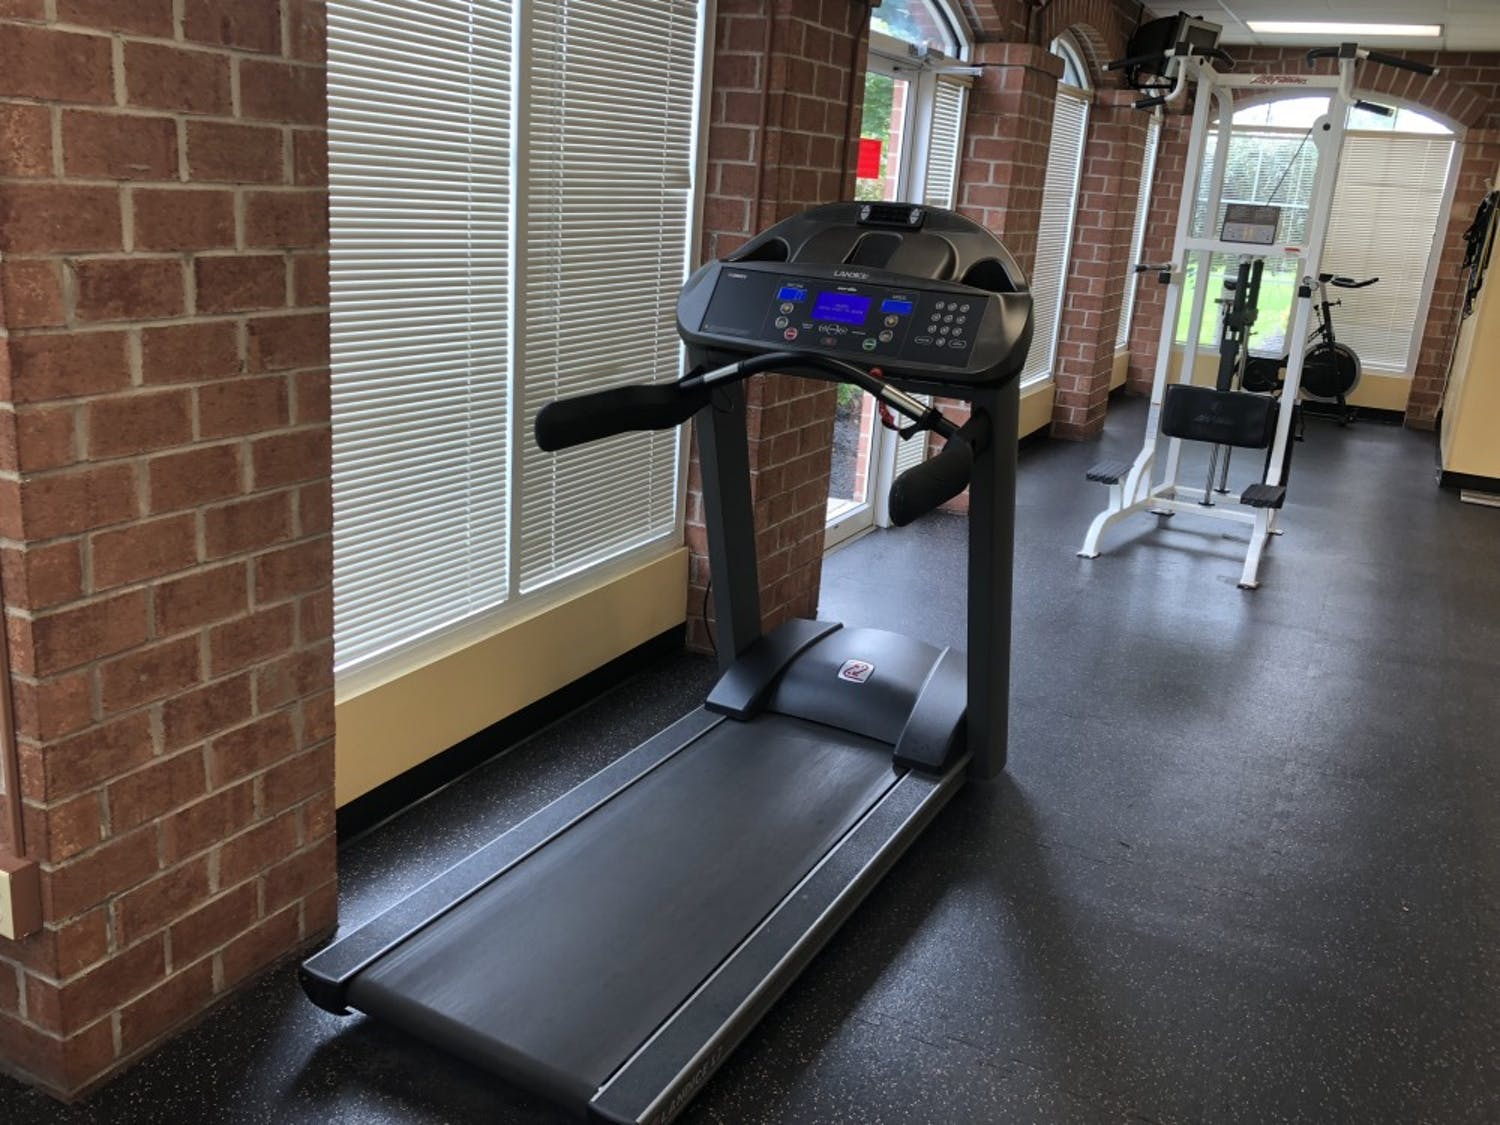 A Landice L7 model treadmill sits in Hadley Village. The Erie County District Attorney's office said UB has a Landice L7 model treadmill, purchased by former Campus Living director Andrea Costantino. UB, however, says it has no record of Costantino's treadmill returning to campus.